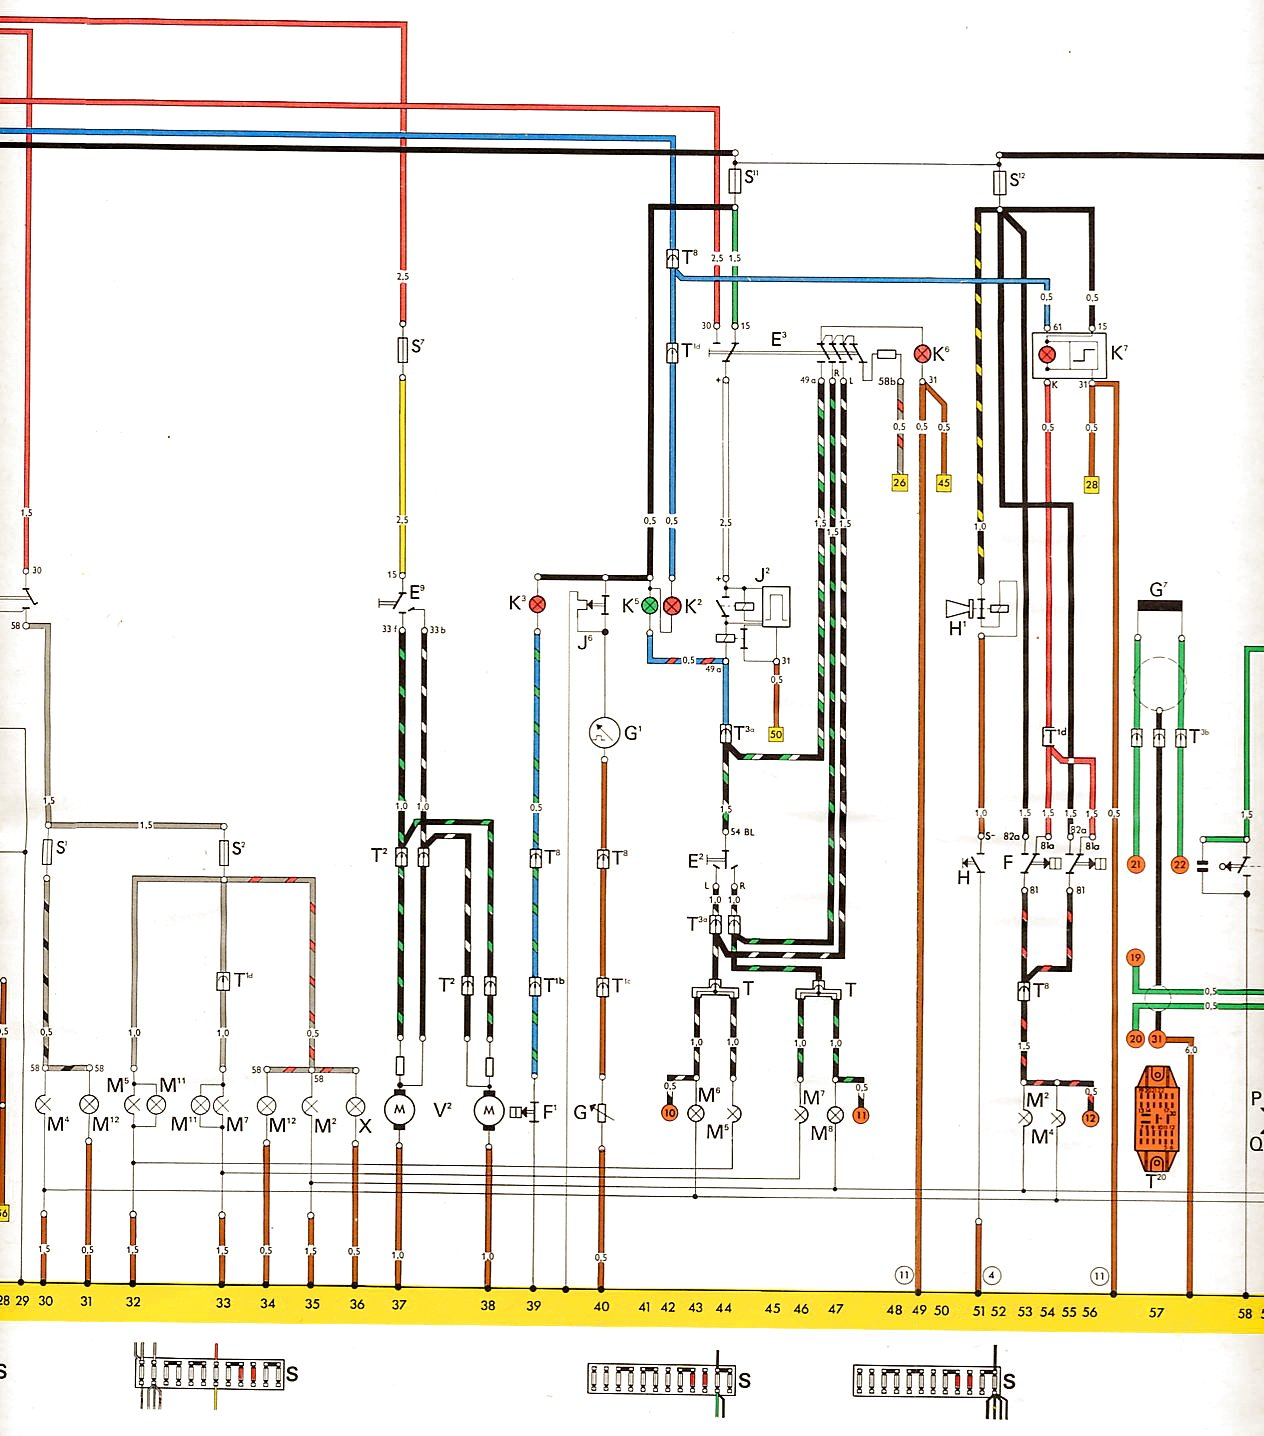 Type 181 Wiring Diagram Images Gallery